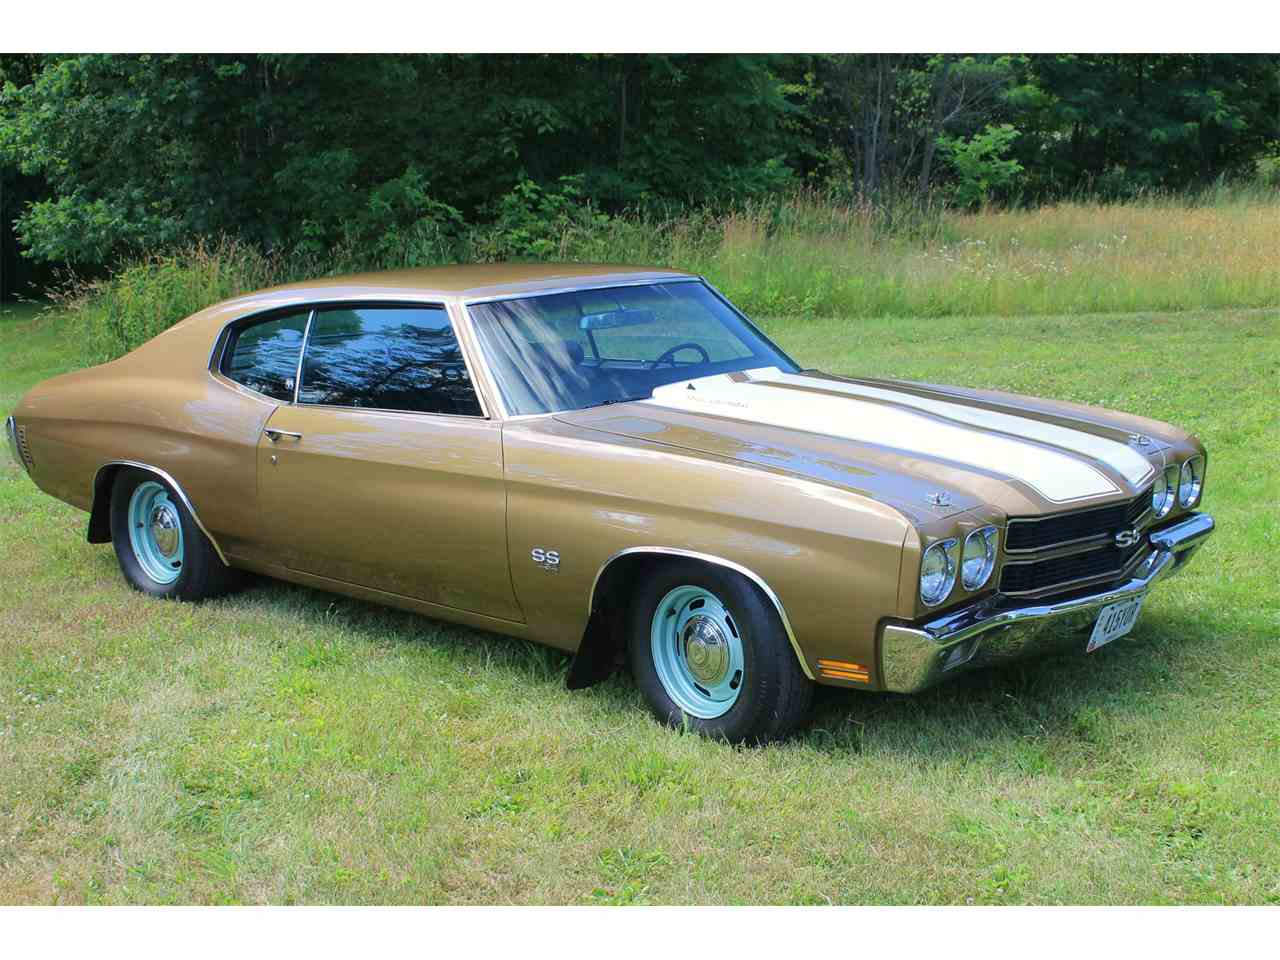 1970 Chevrolet Malibu for Sale on ClassicCars.com